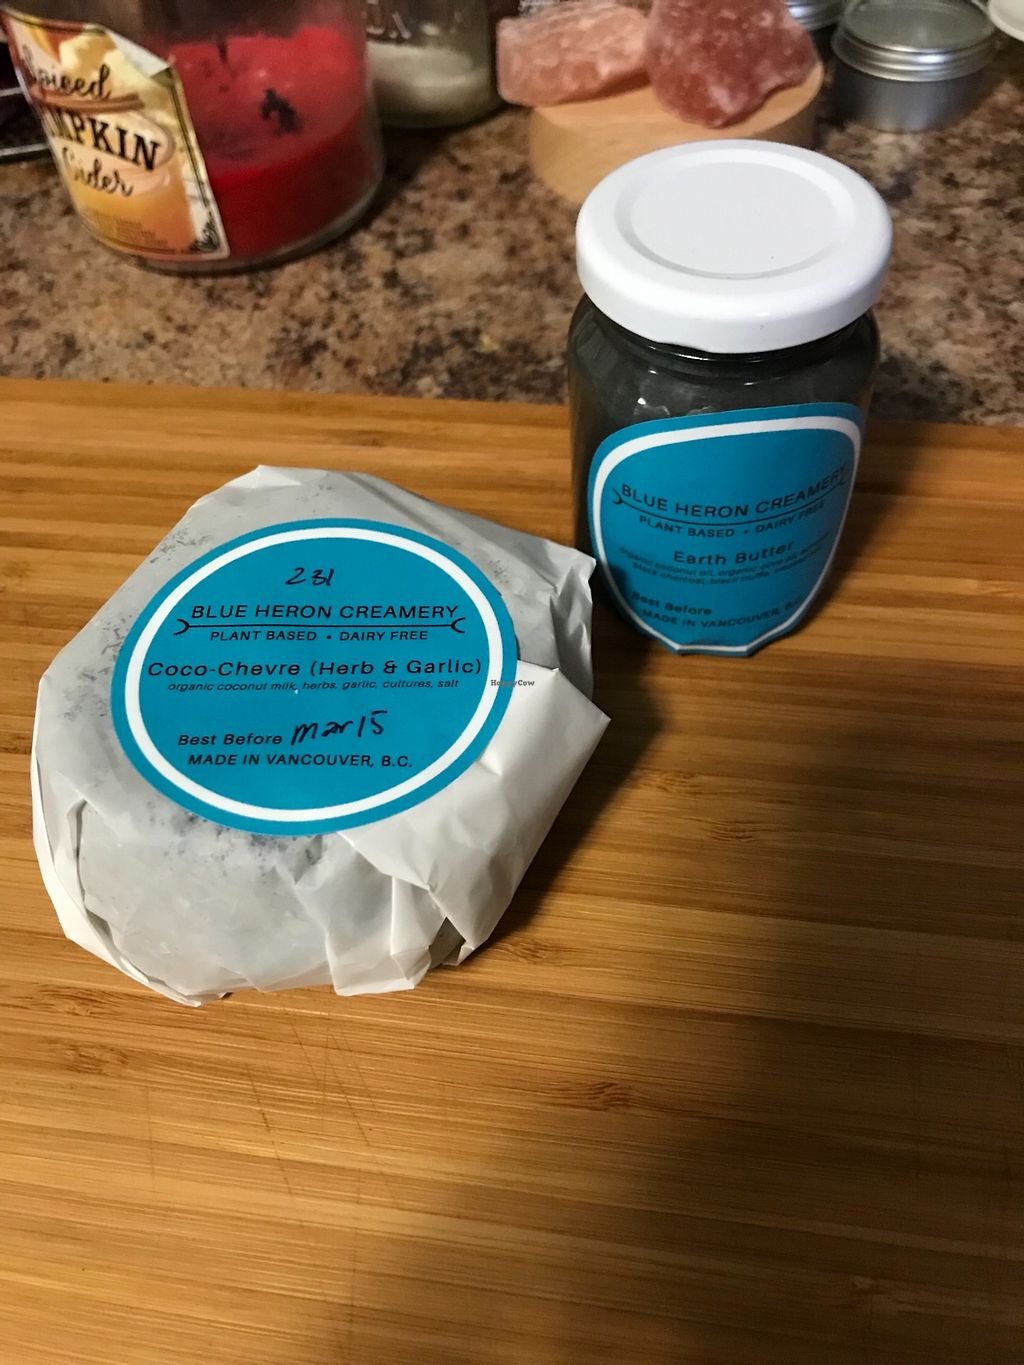 "Photo of Blue Heron Creamery  by <a href=""/members/profile/ohstephyy"">ohstephyy</a> <br/>Coco-chevre (herb & garlic) and Earth Butter <br/> February 18, 2018  - <a href='/contact/abuse/image/112388/361023'>Report</a>"